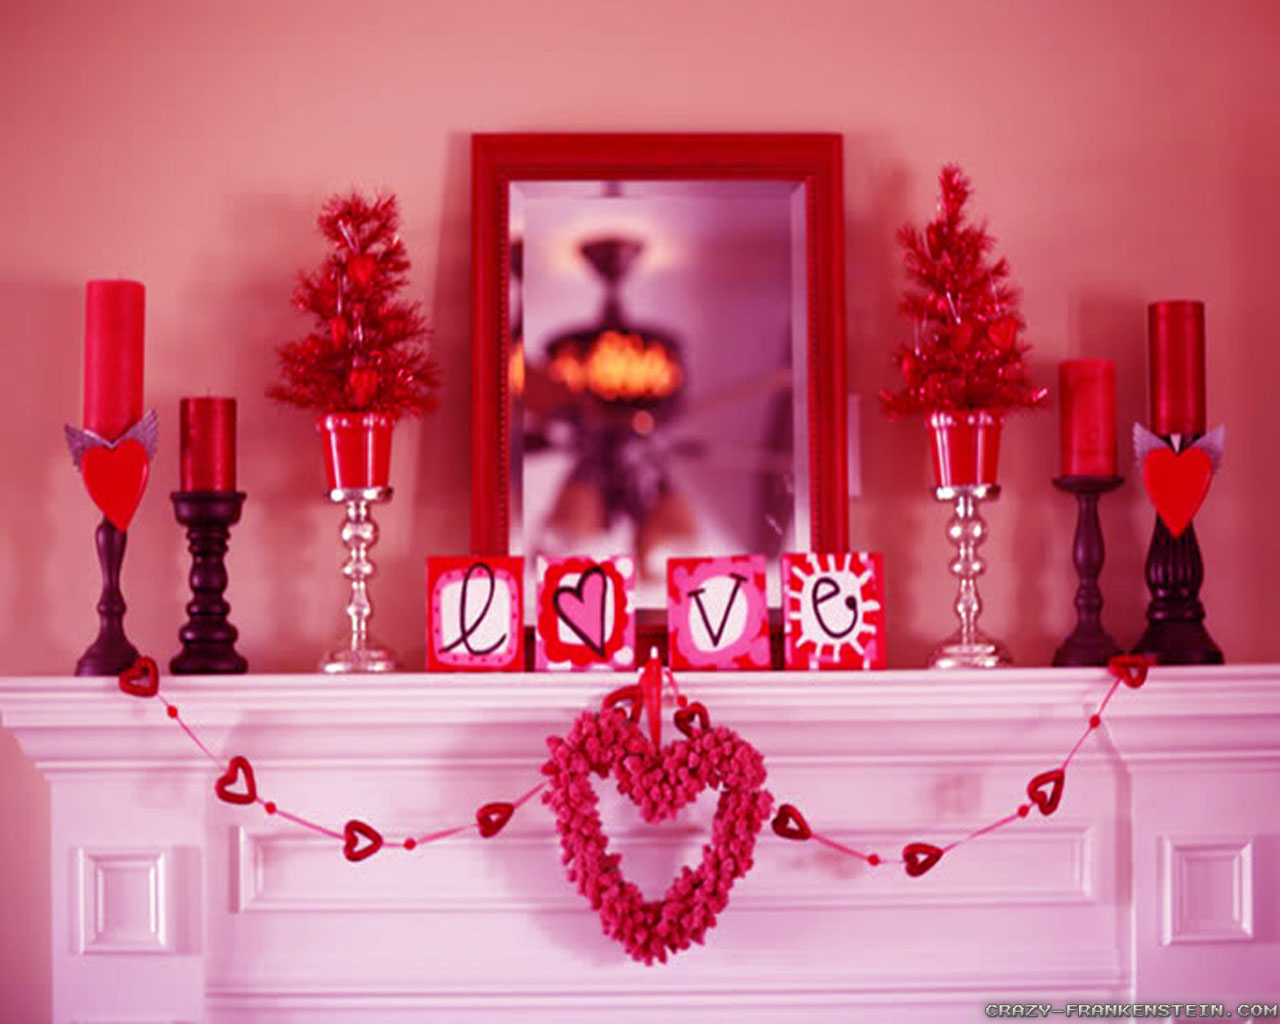 Wall Colour Inspiration: Eager Hands: Valentine's Day Decorating Ideas